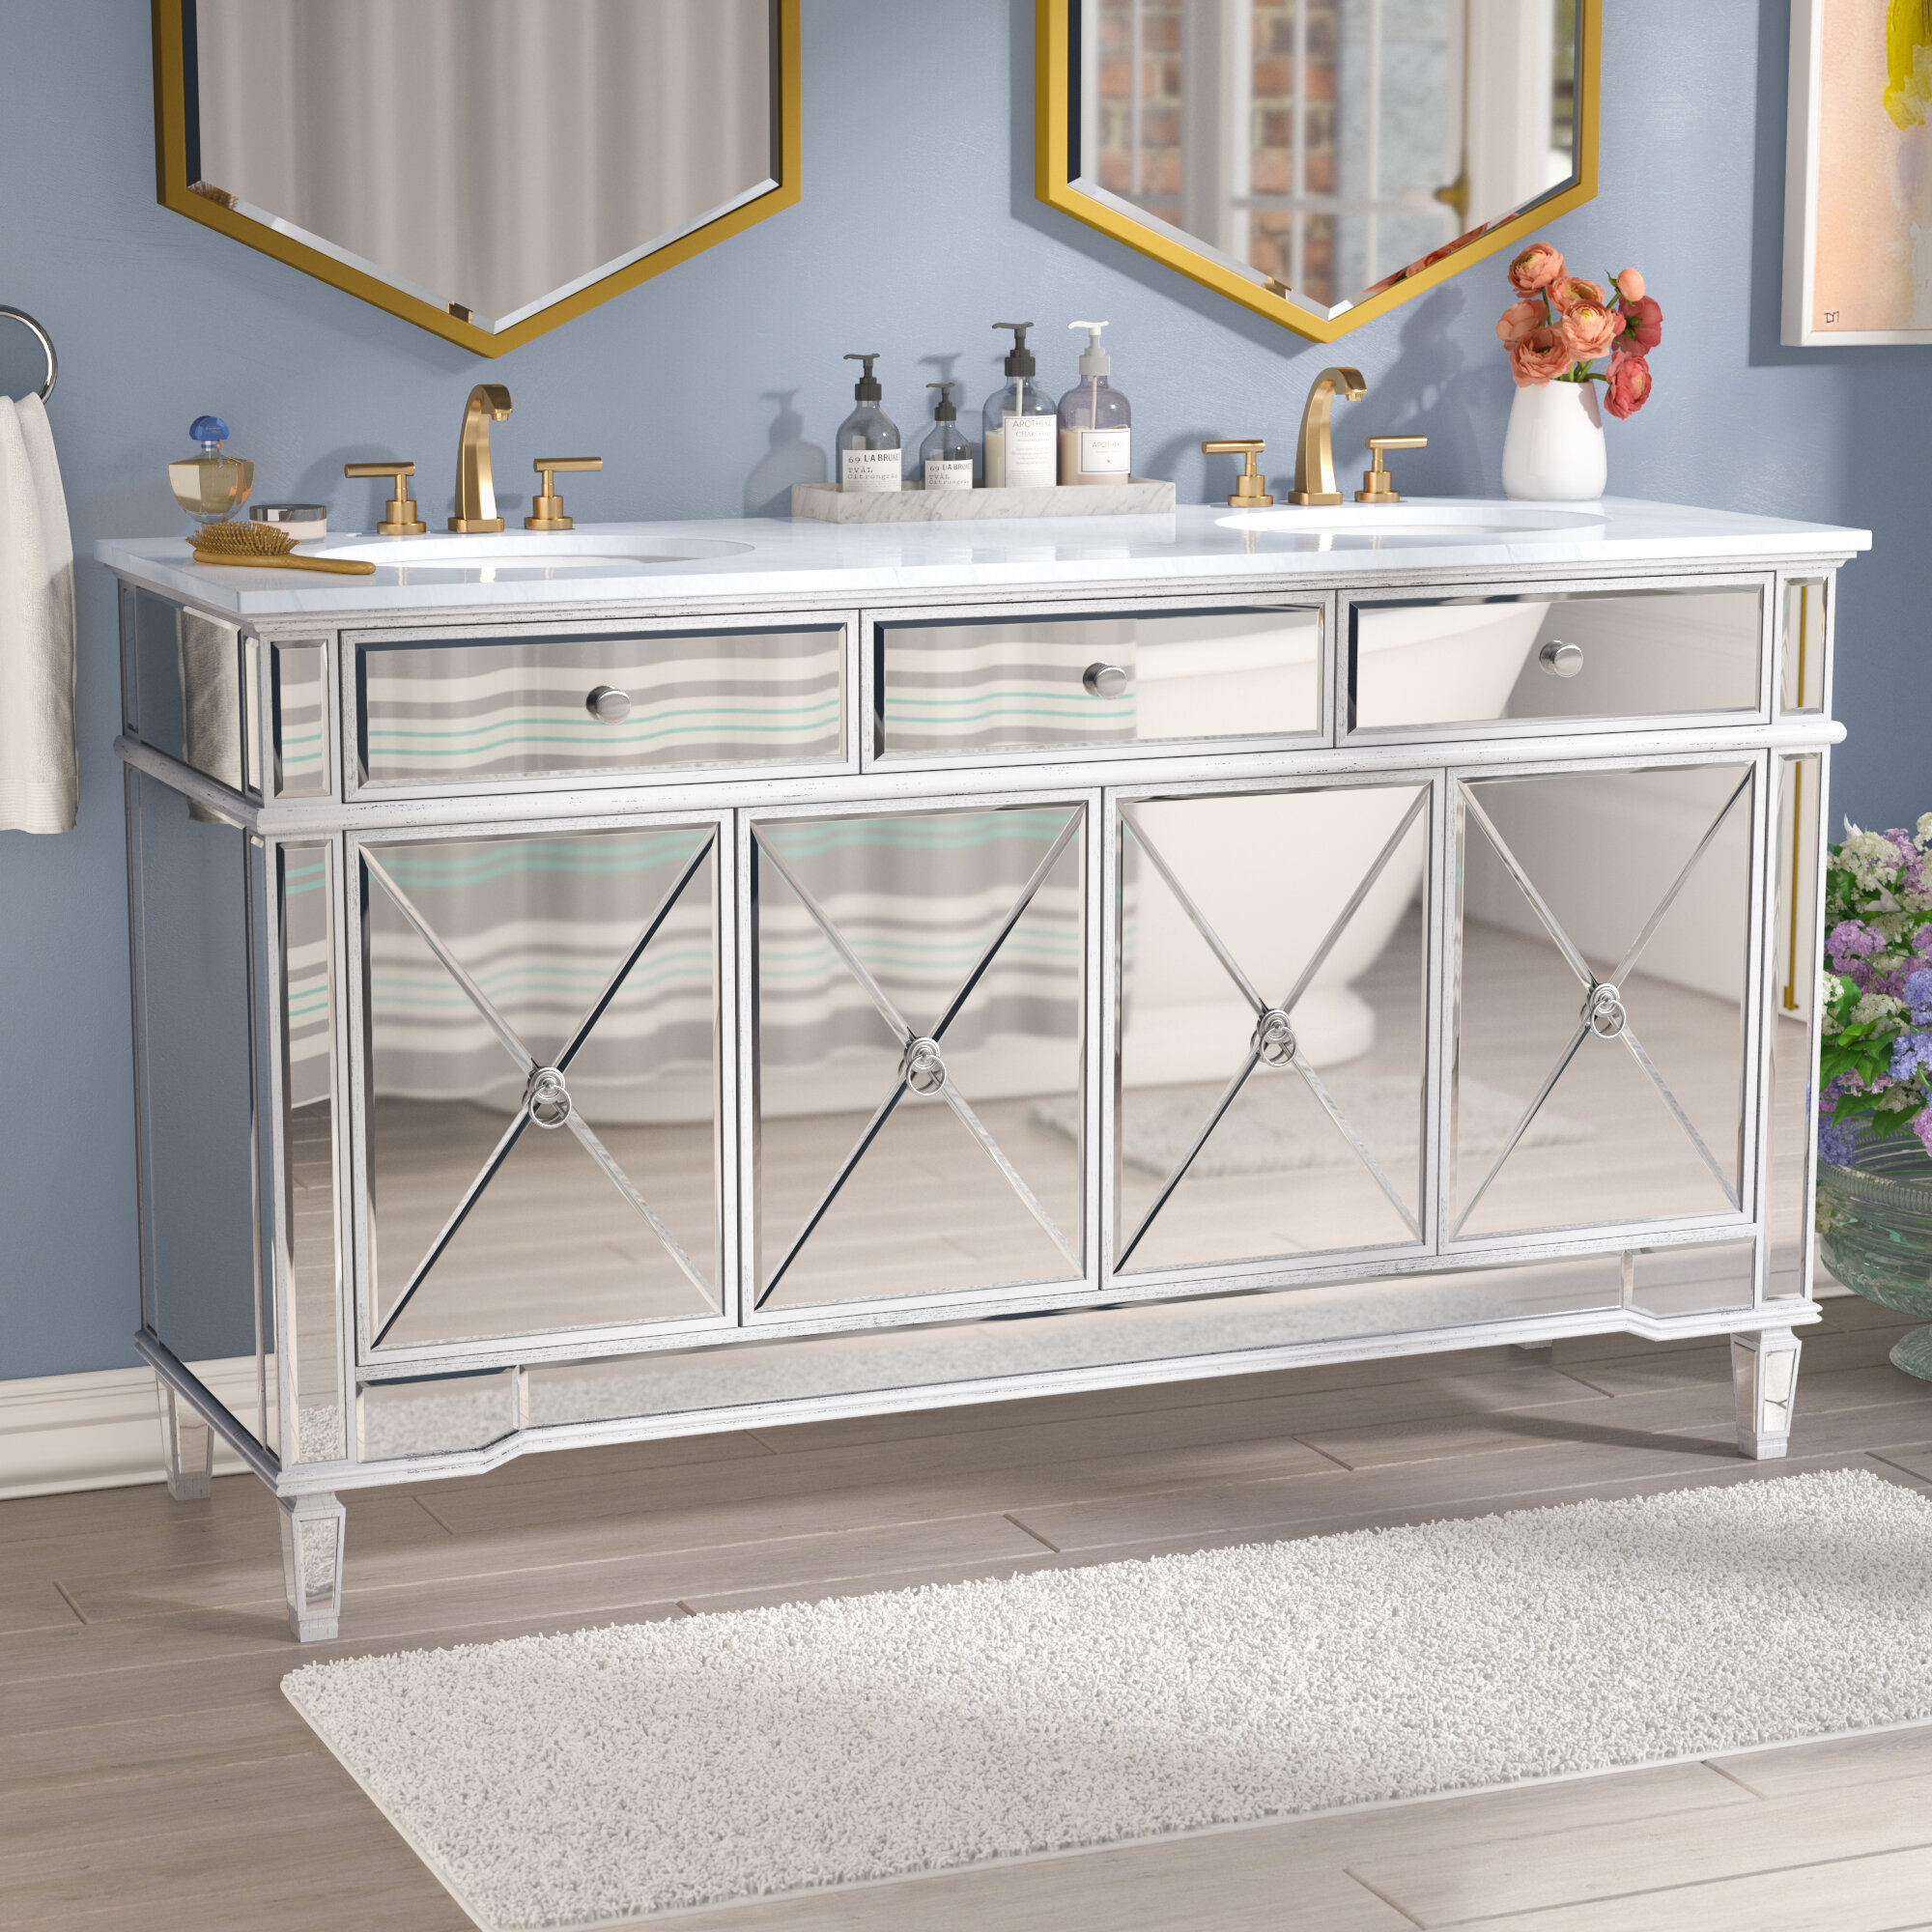 home for wondrous double design furniture depot of small sink ideas bathroom contemporary vanities vanity top lowes inch tops